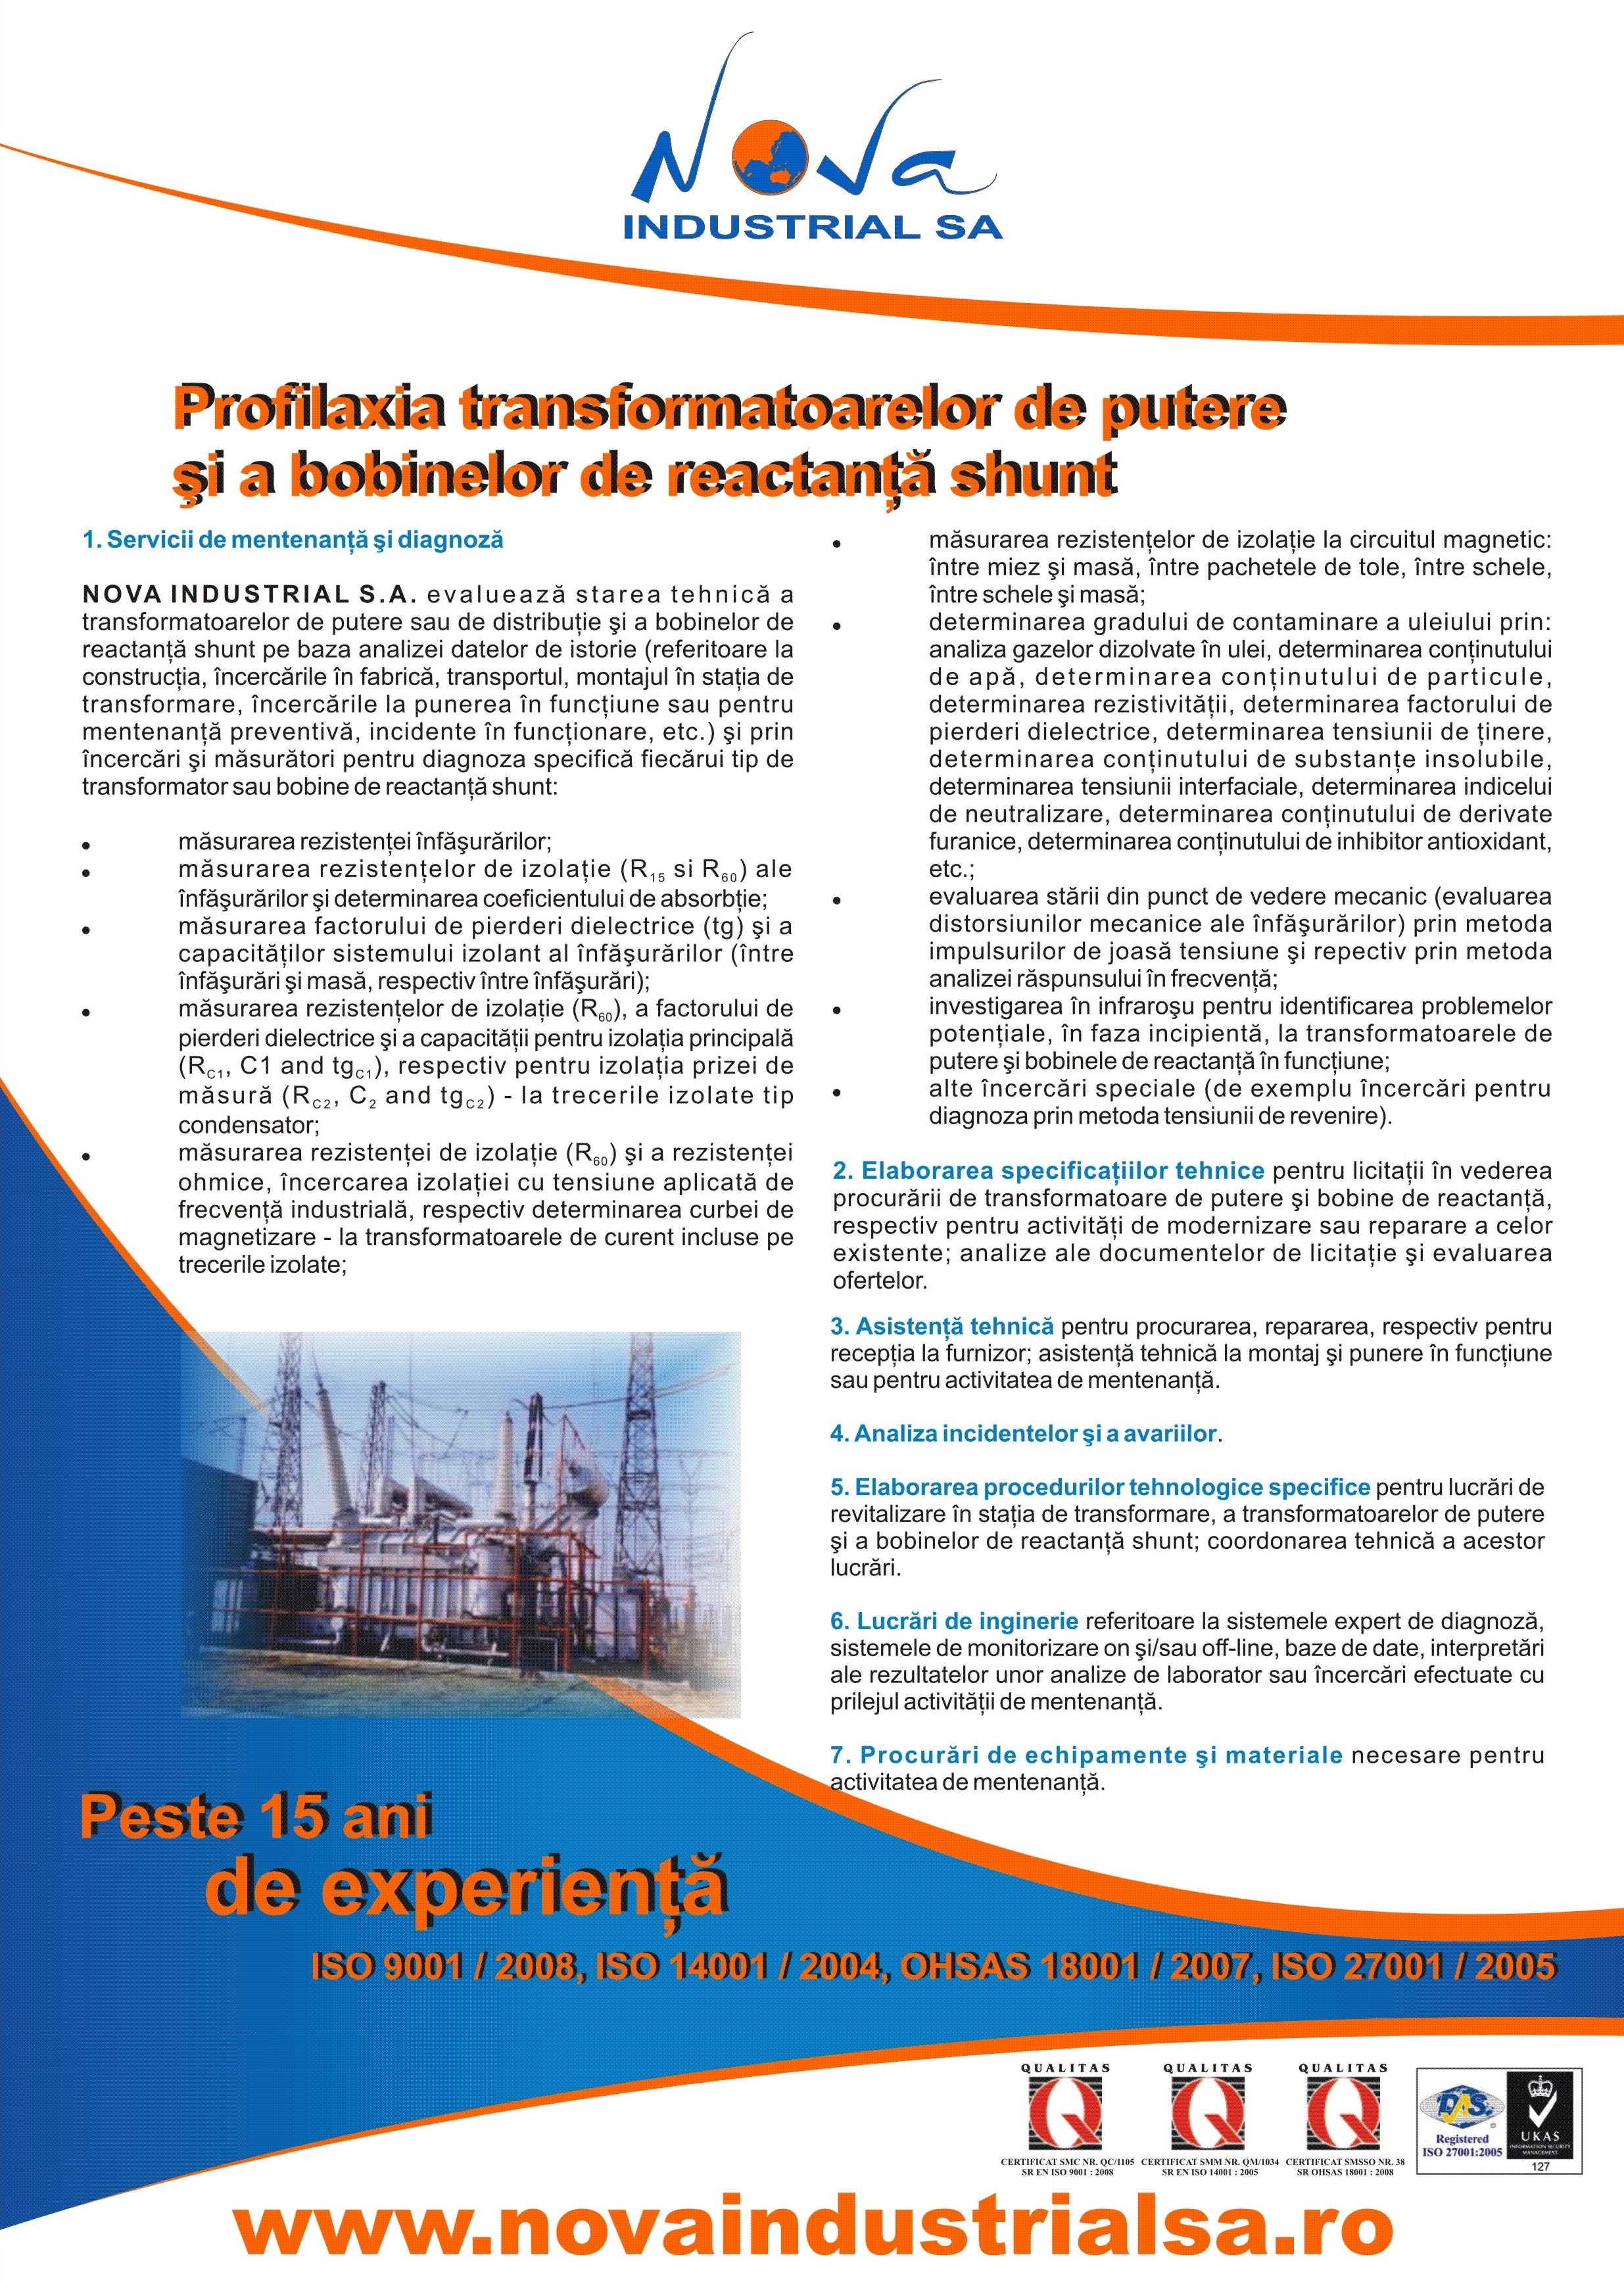 Power transformers and shunt reactors prophylaxis